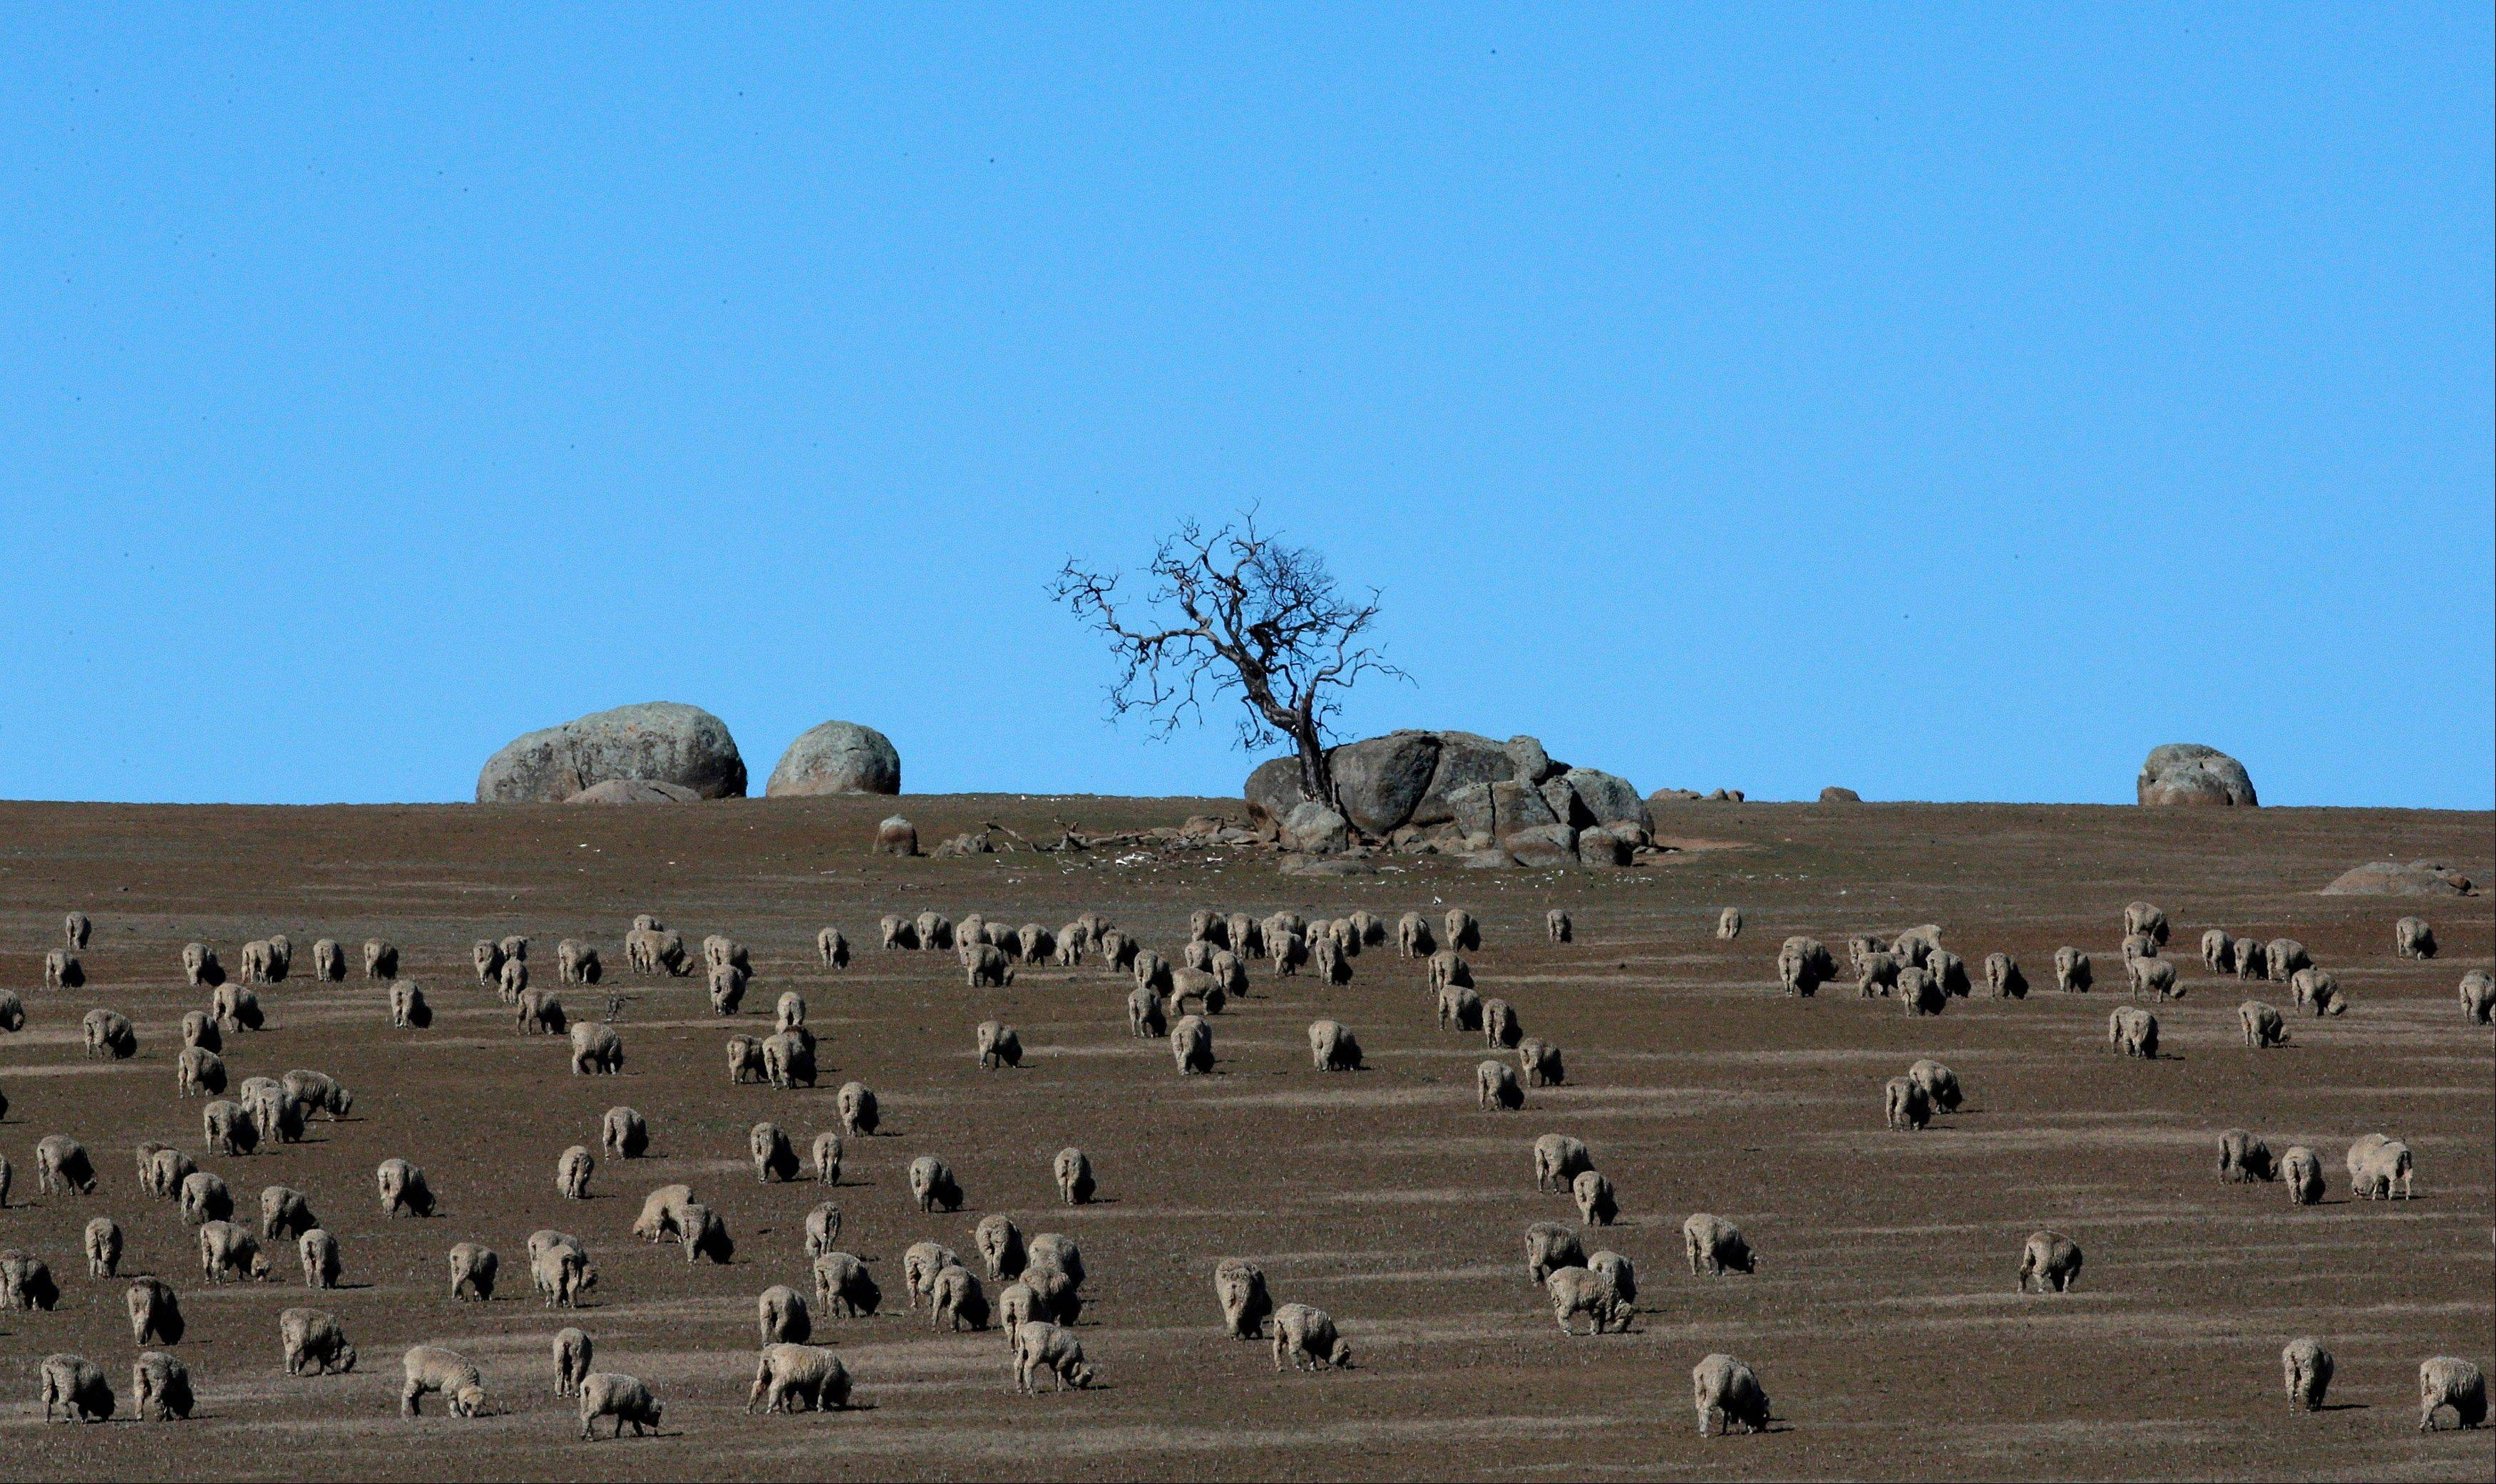 Hundreds of sheep graze in a paddock outside the town of Griffith, 356 miles from Sydney, Australia.